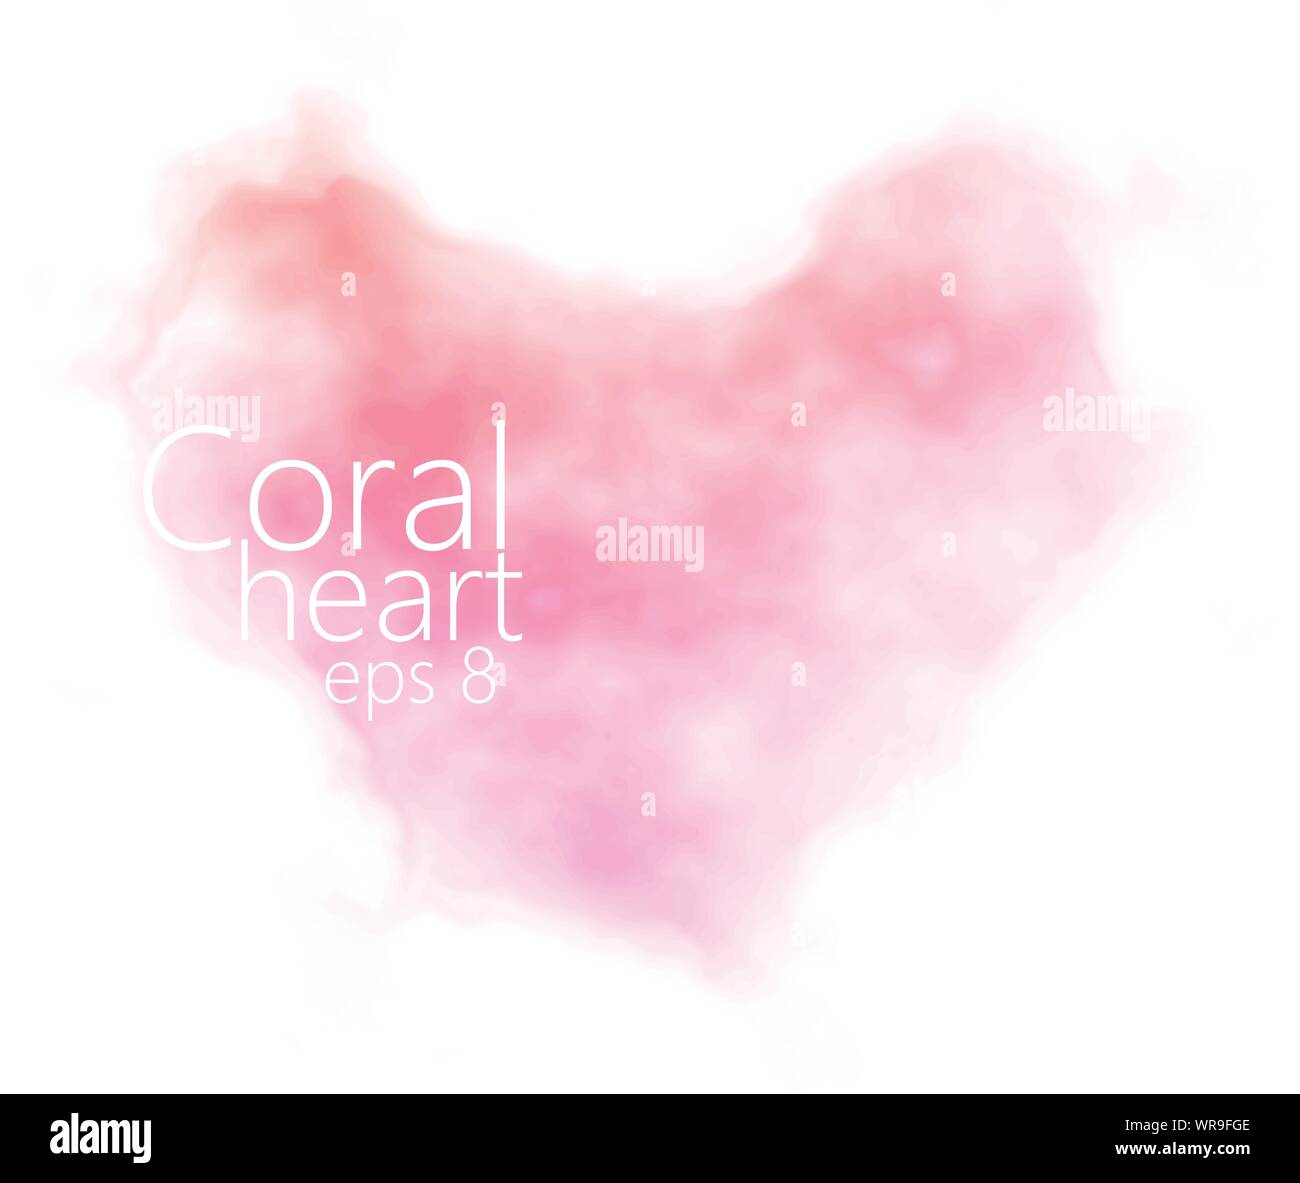 Watercolor heart shape in pink, coral, light salmon. Abstract pastel background with soft blended textures. eps8. Stock Vector